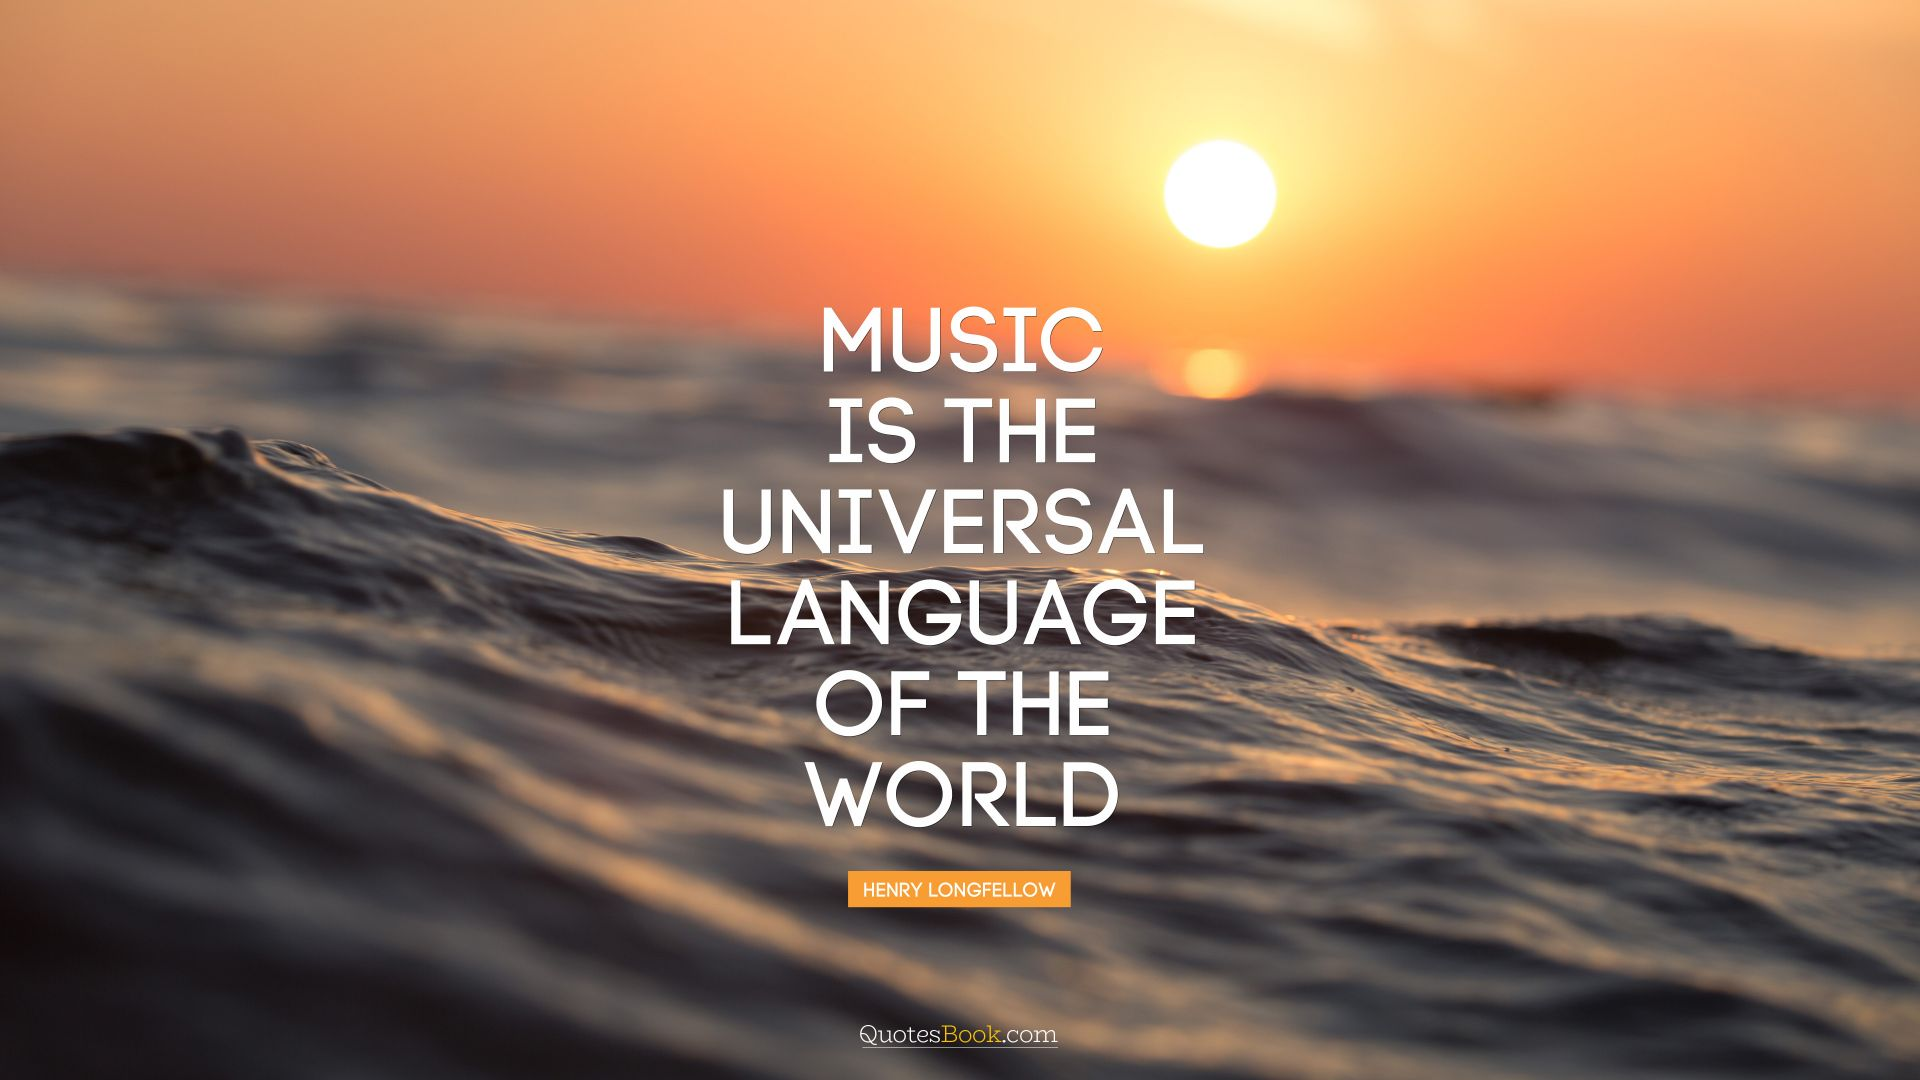 Music is the universal language of the world. - Quote by Henry Longfellow